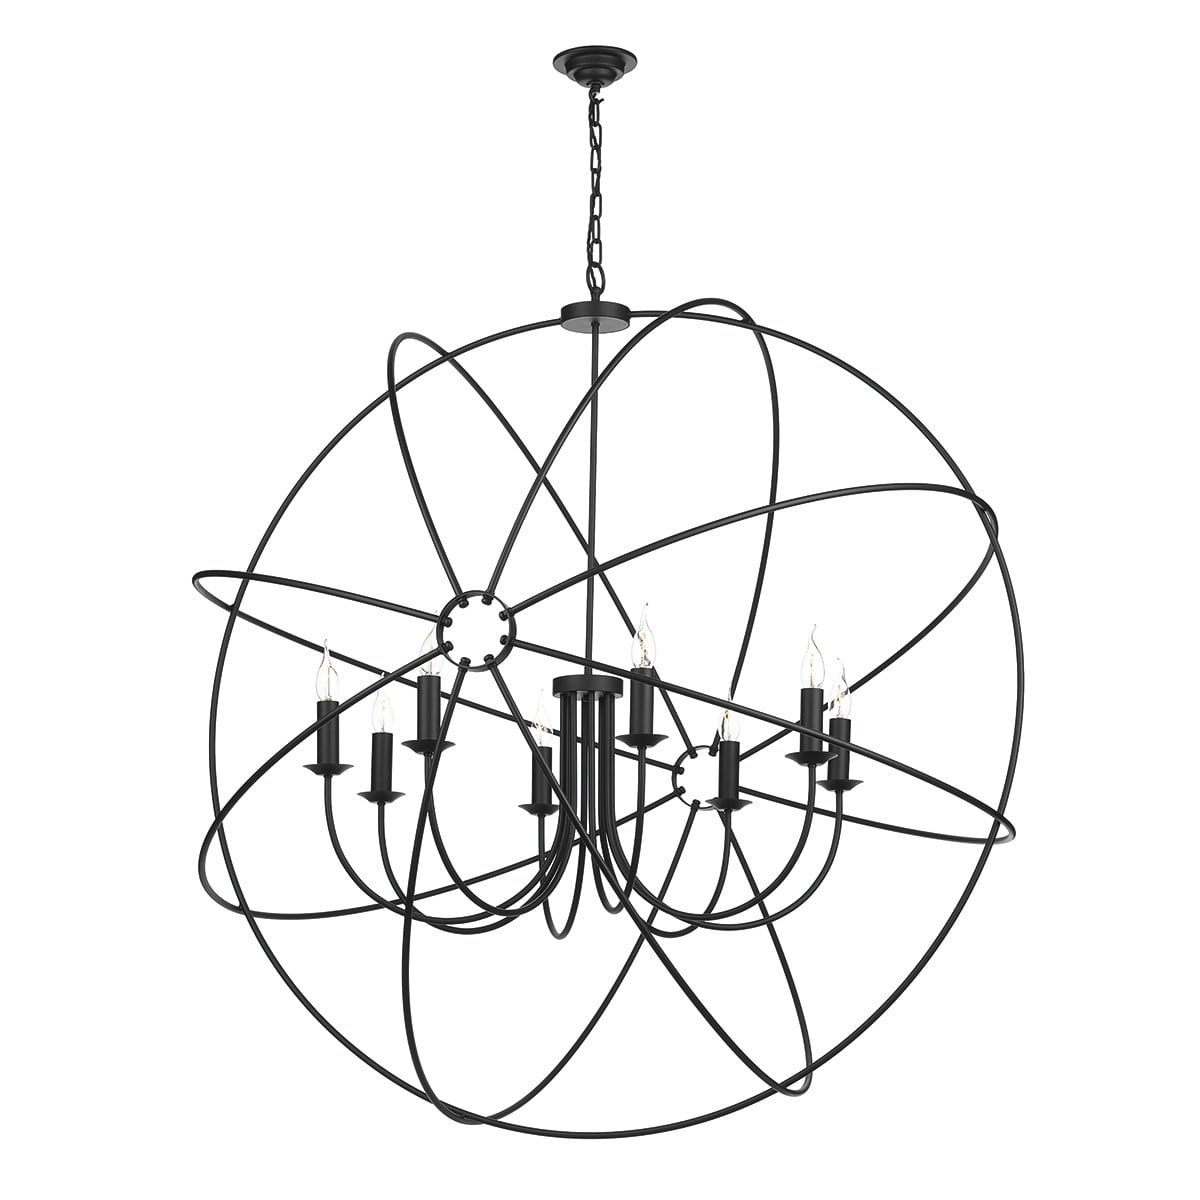 David Hunt Lighting ORB0822 Orb 8 Light Pendant in Black Finish